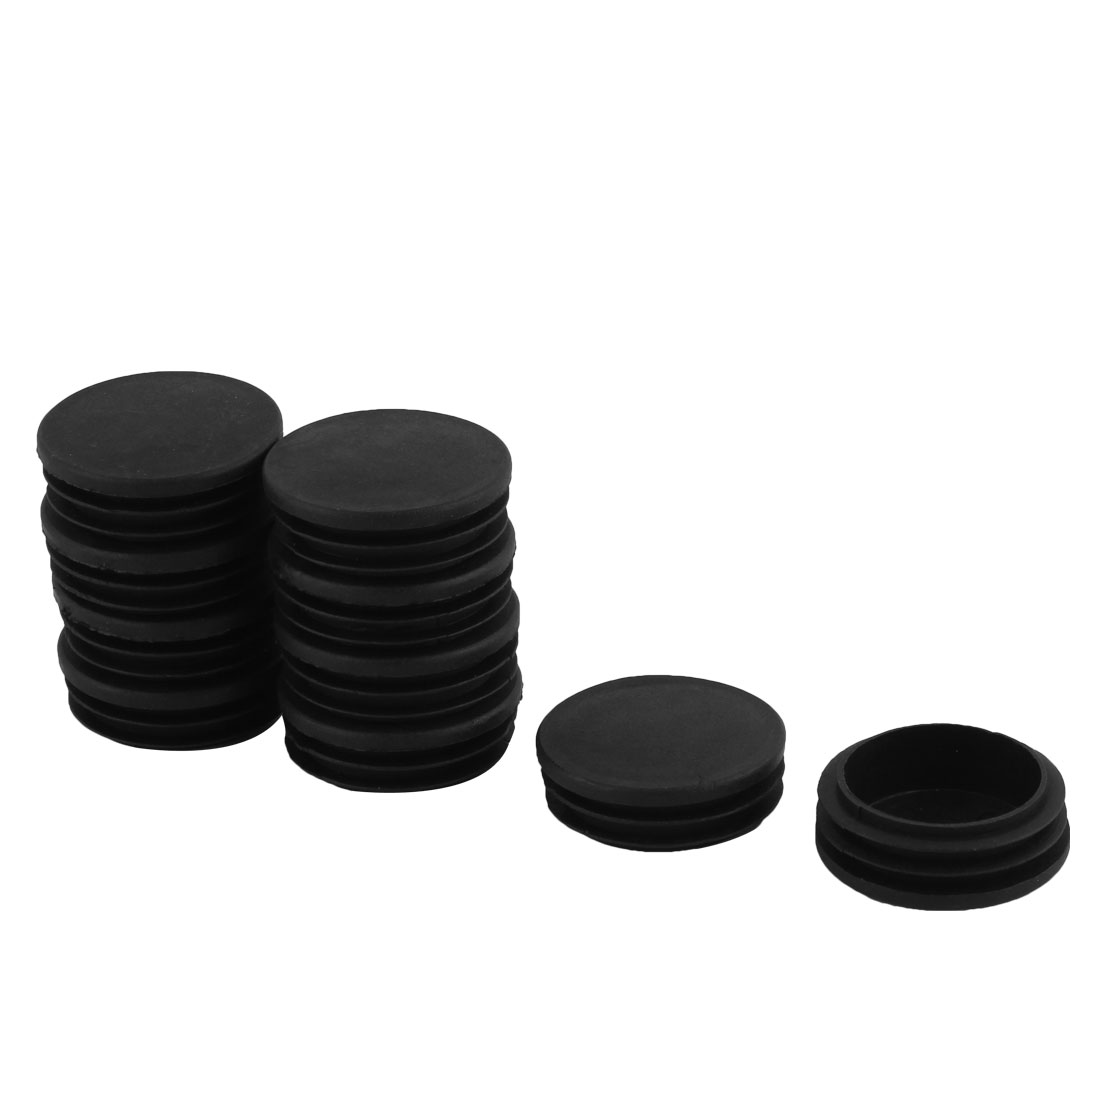 Home Office Plastic Round Shaped Table Chair Leg Tube Insert Black 47mm Dia 10pcs